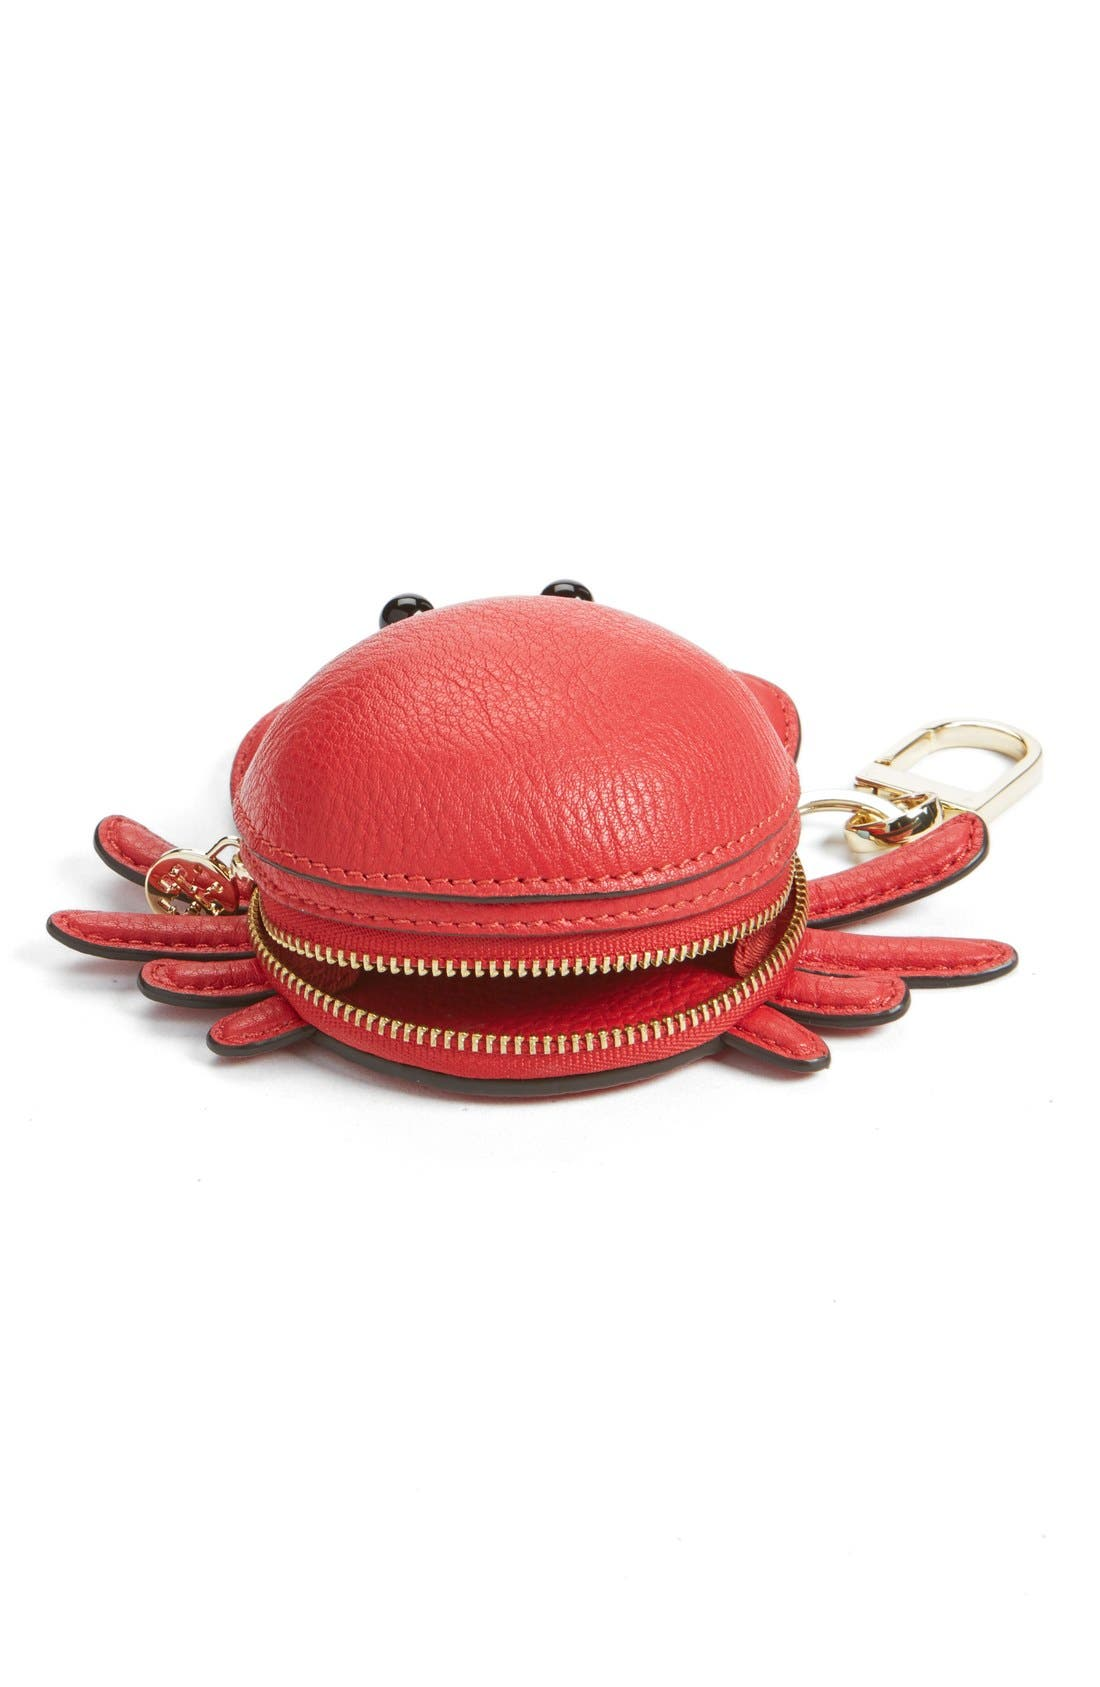 Alternate Image 2  - Tory Burch 'Carl Crab' Coin Pouch Bag Charm